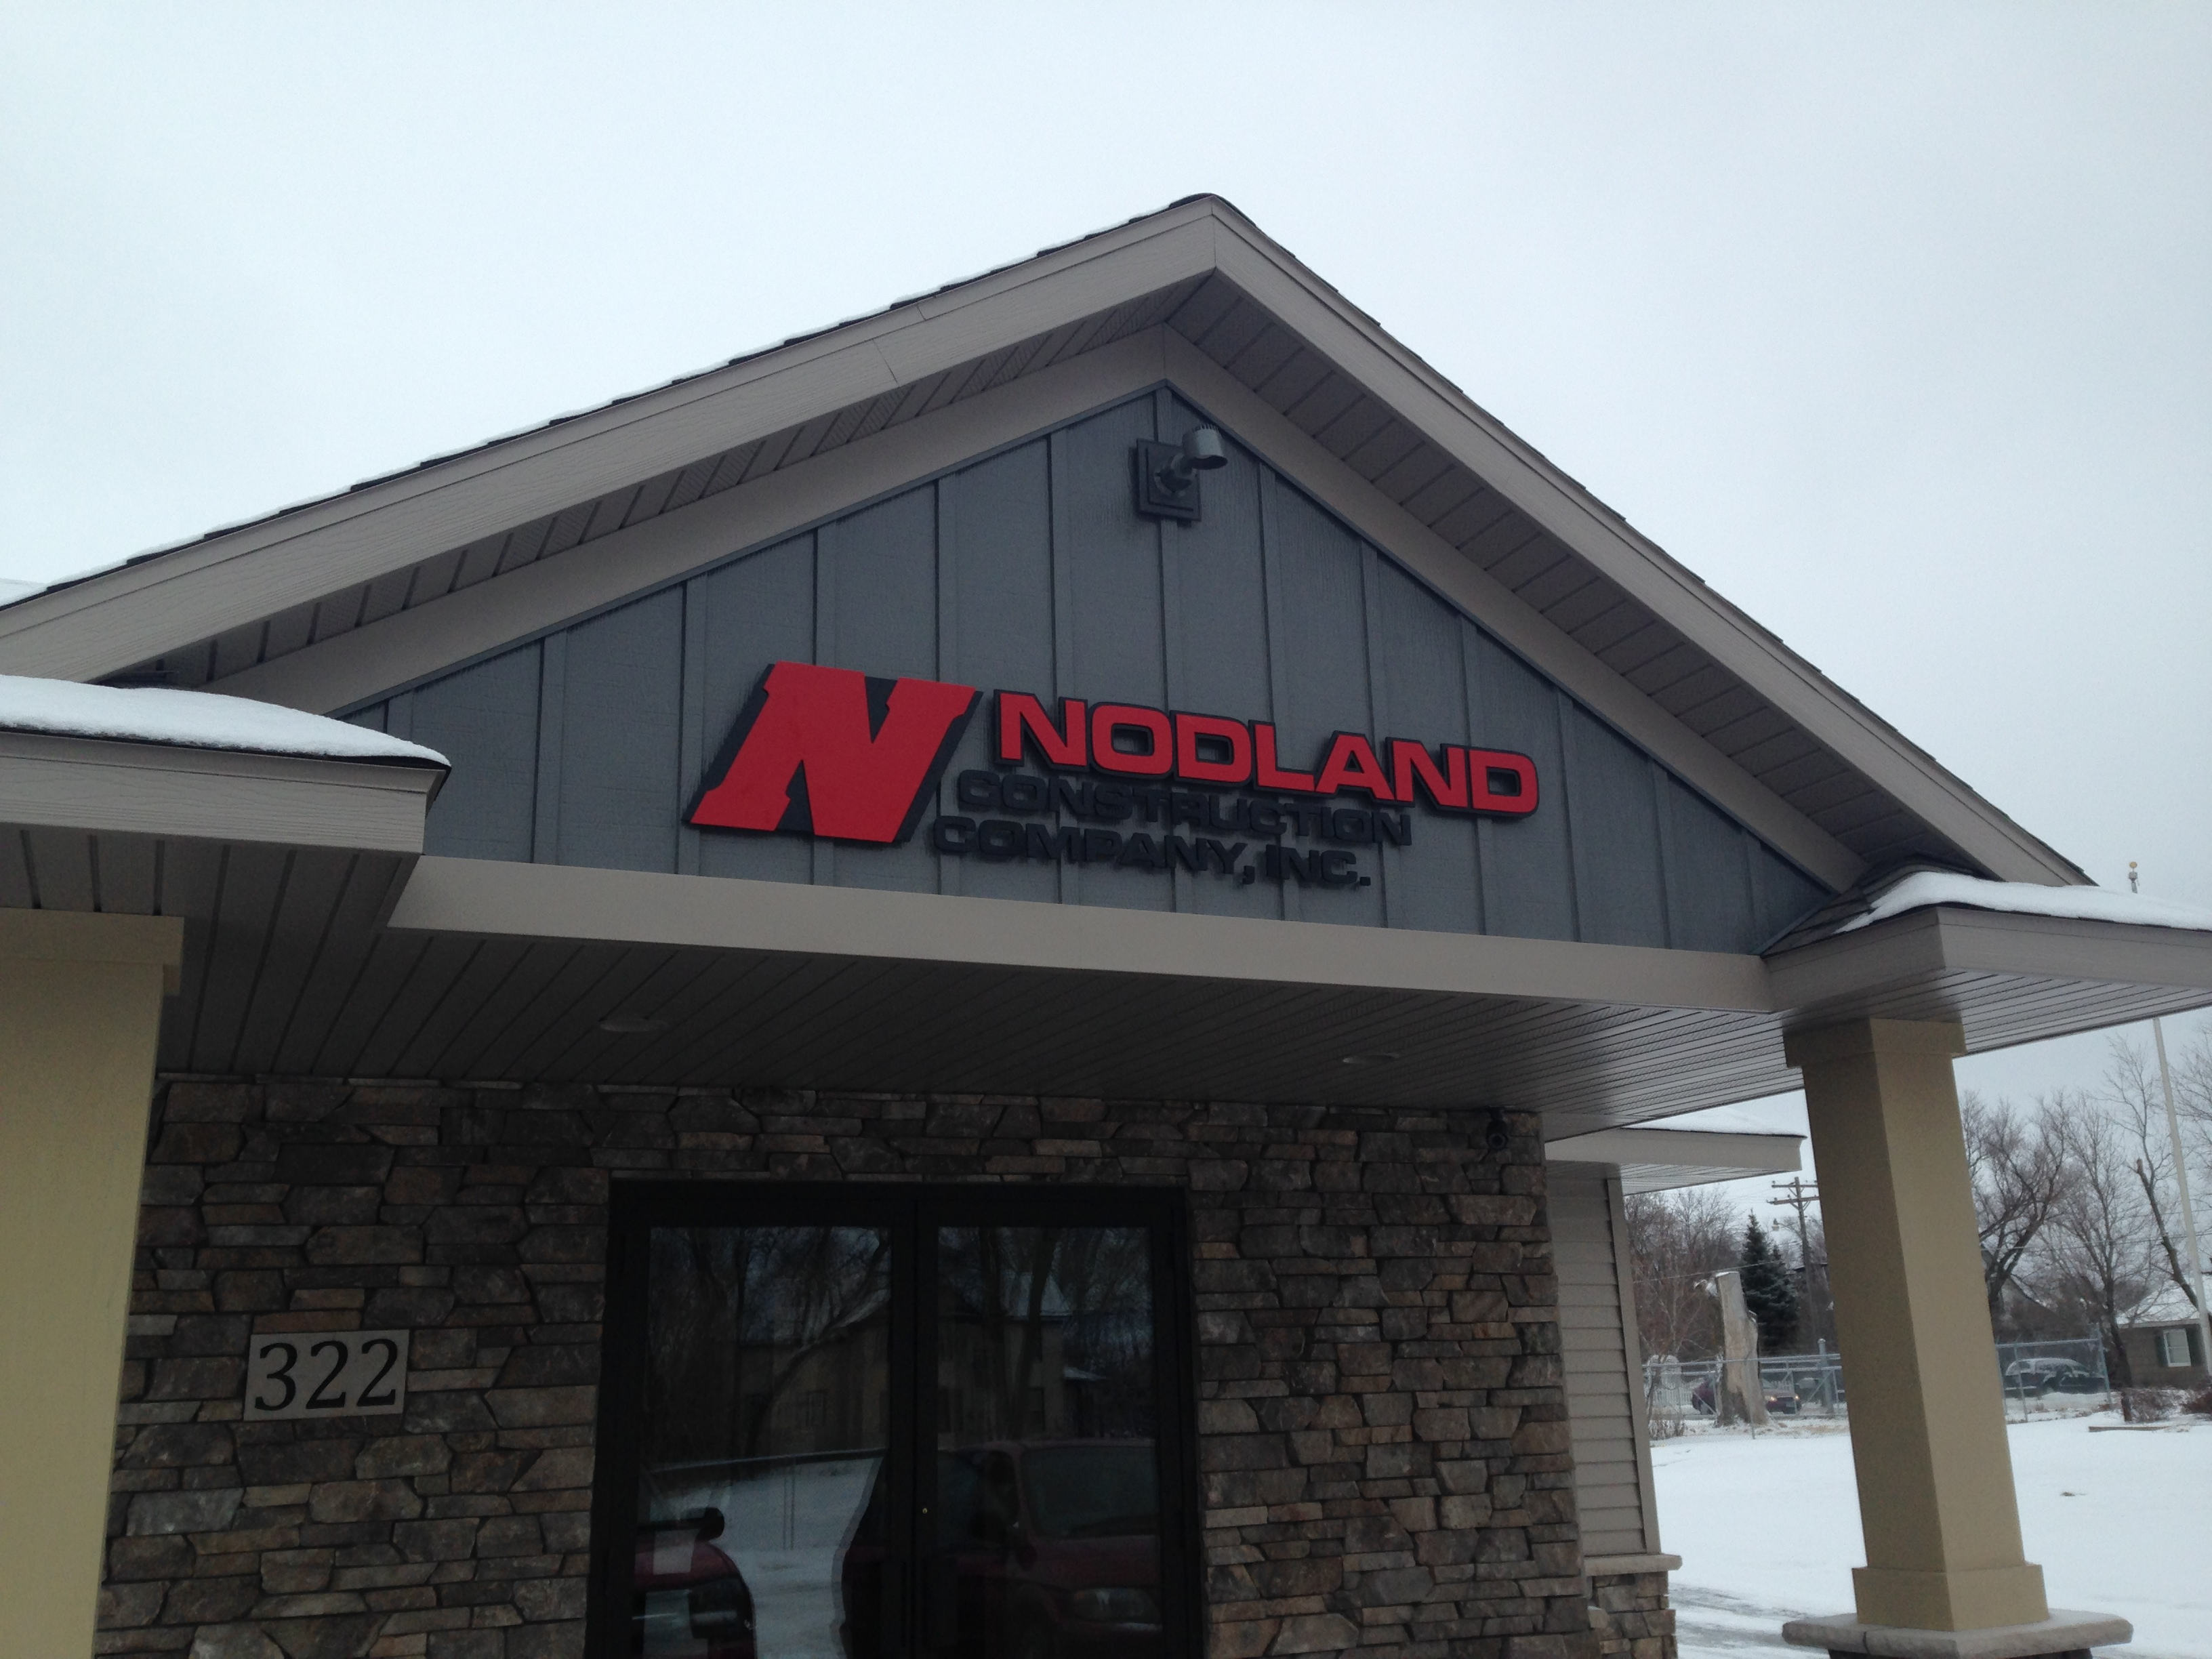 Custom Signs for Nodland Construction | Signmax.com